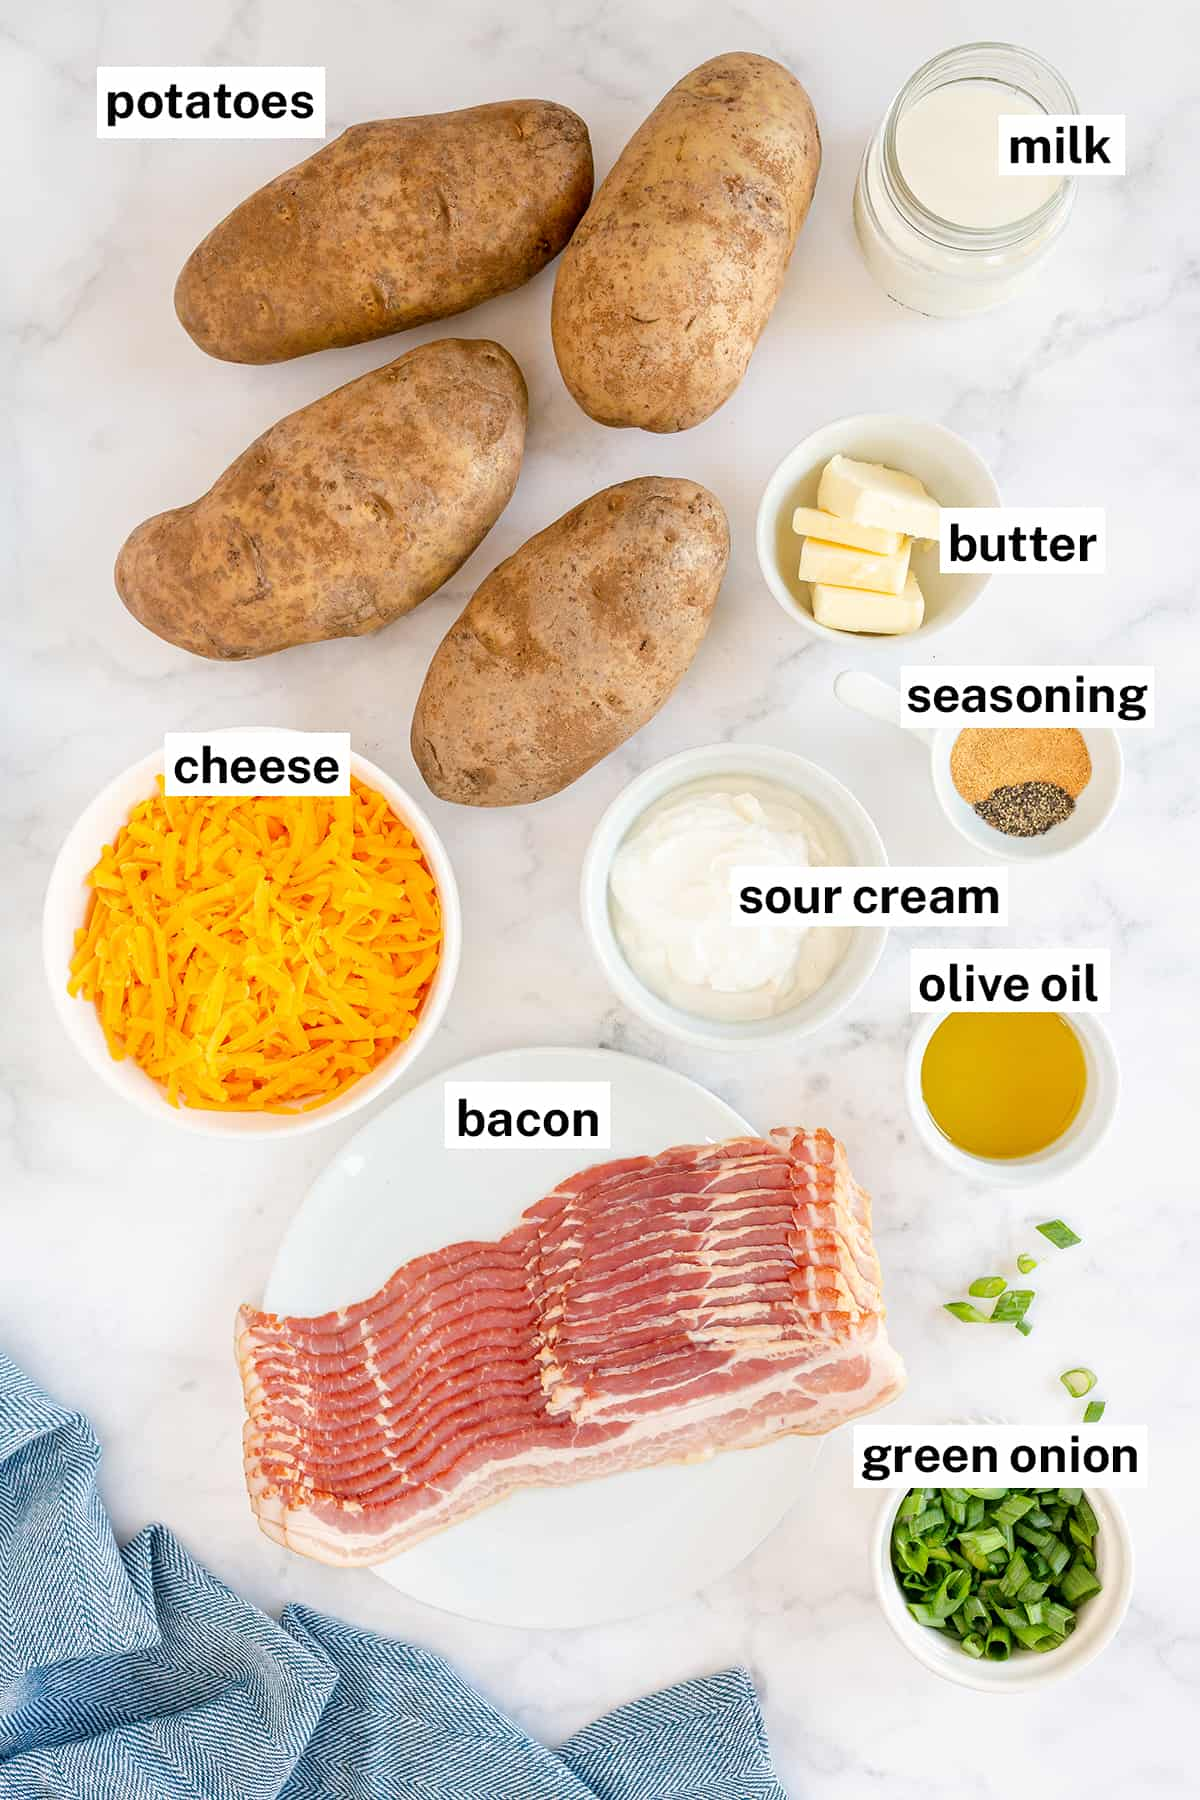 The ingredients to make Twice Baked Potatoes with text overlay.